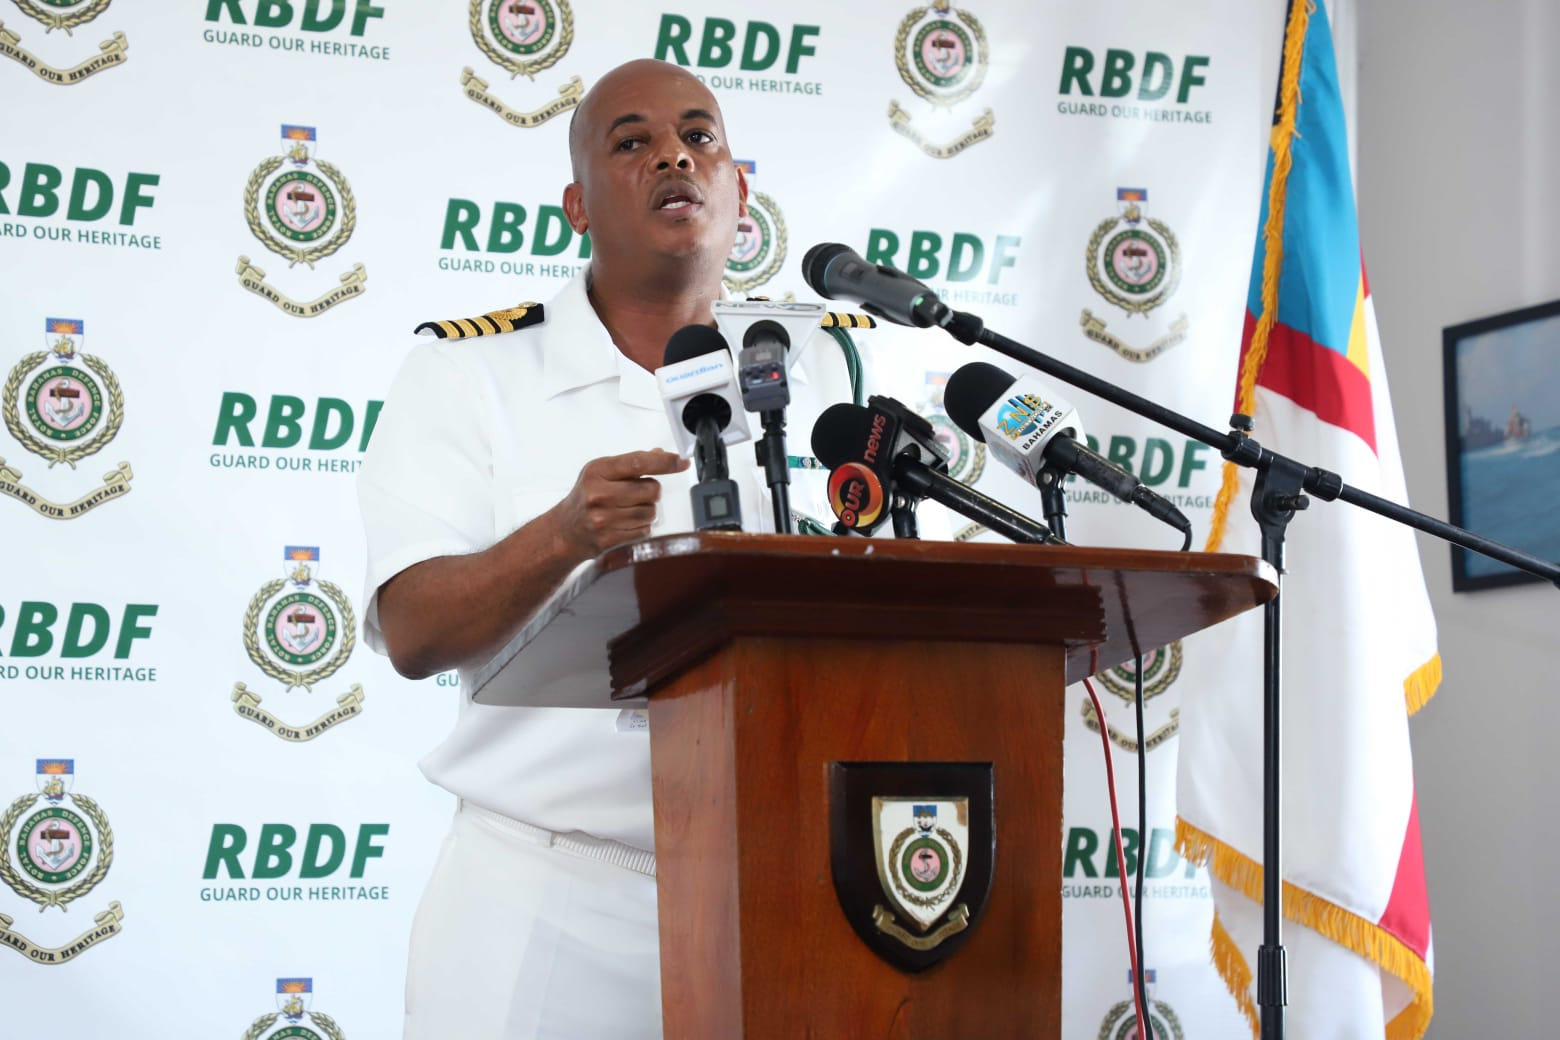 RBDF focused on border strategy in Commodore Bethel's absence